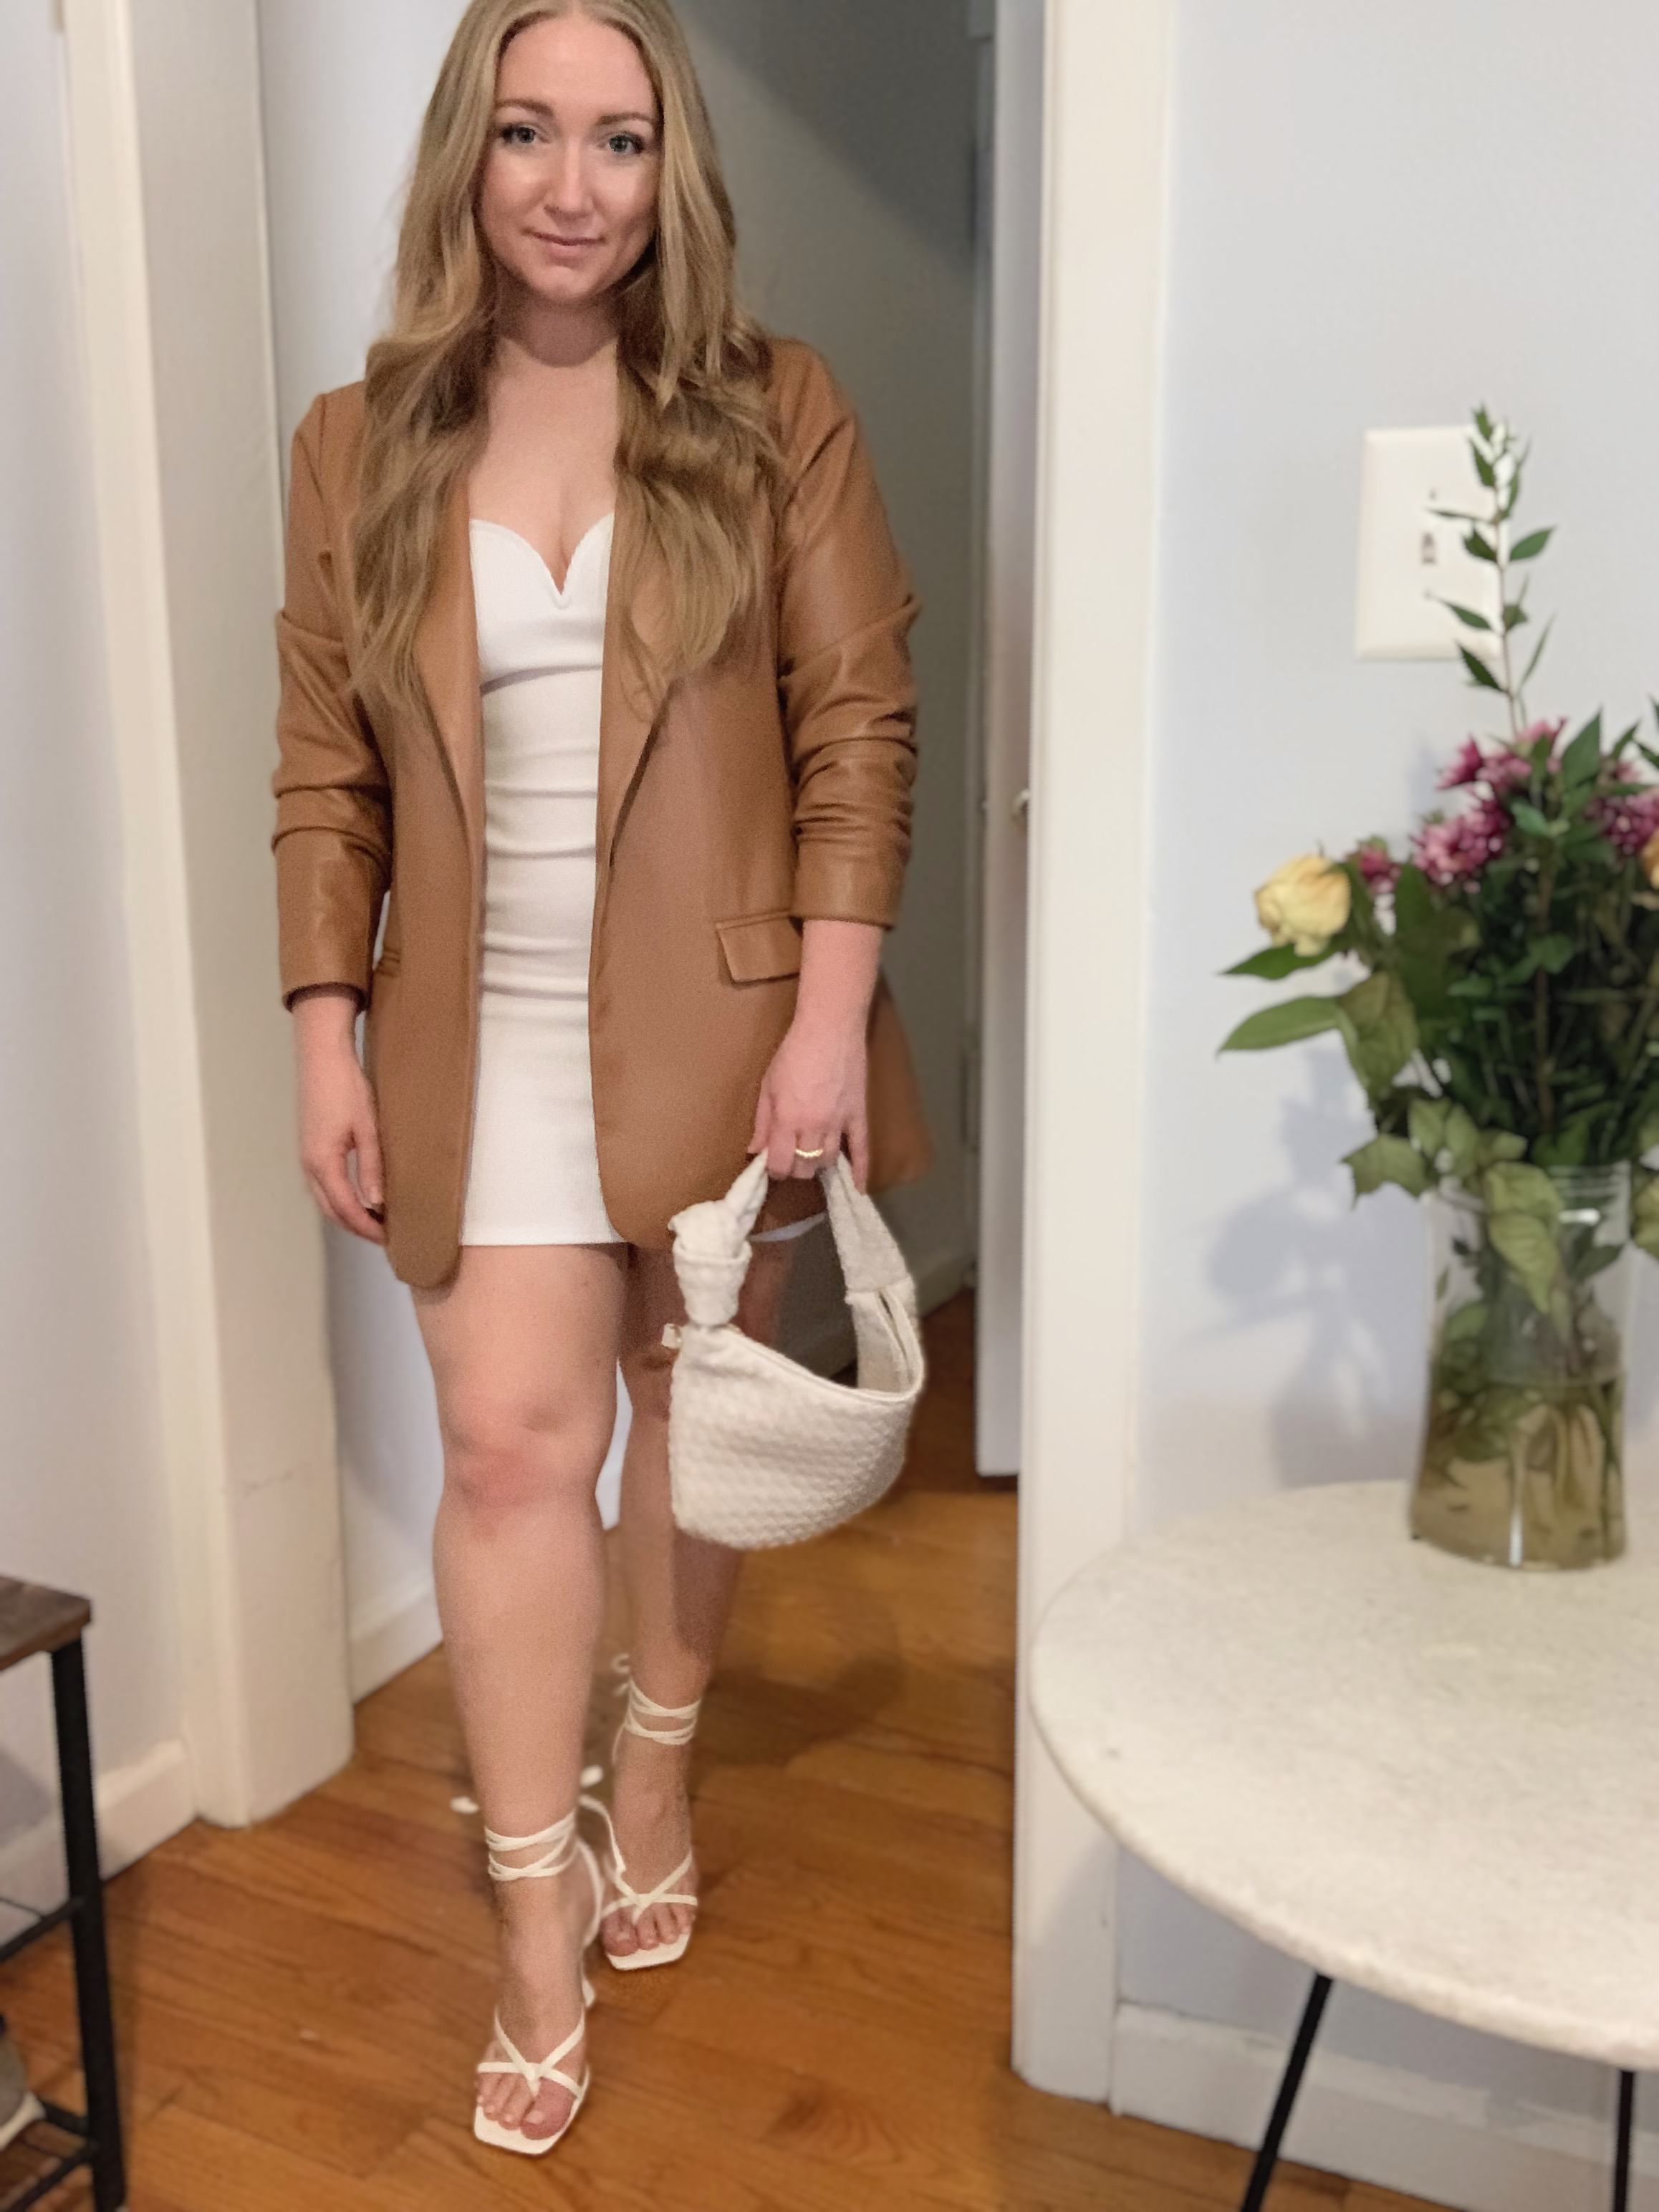 The Perfect Date Night Outfit